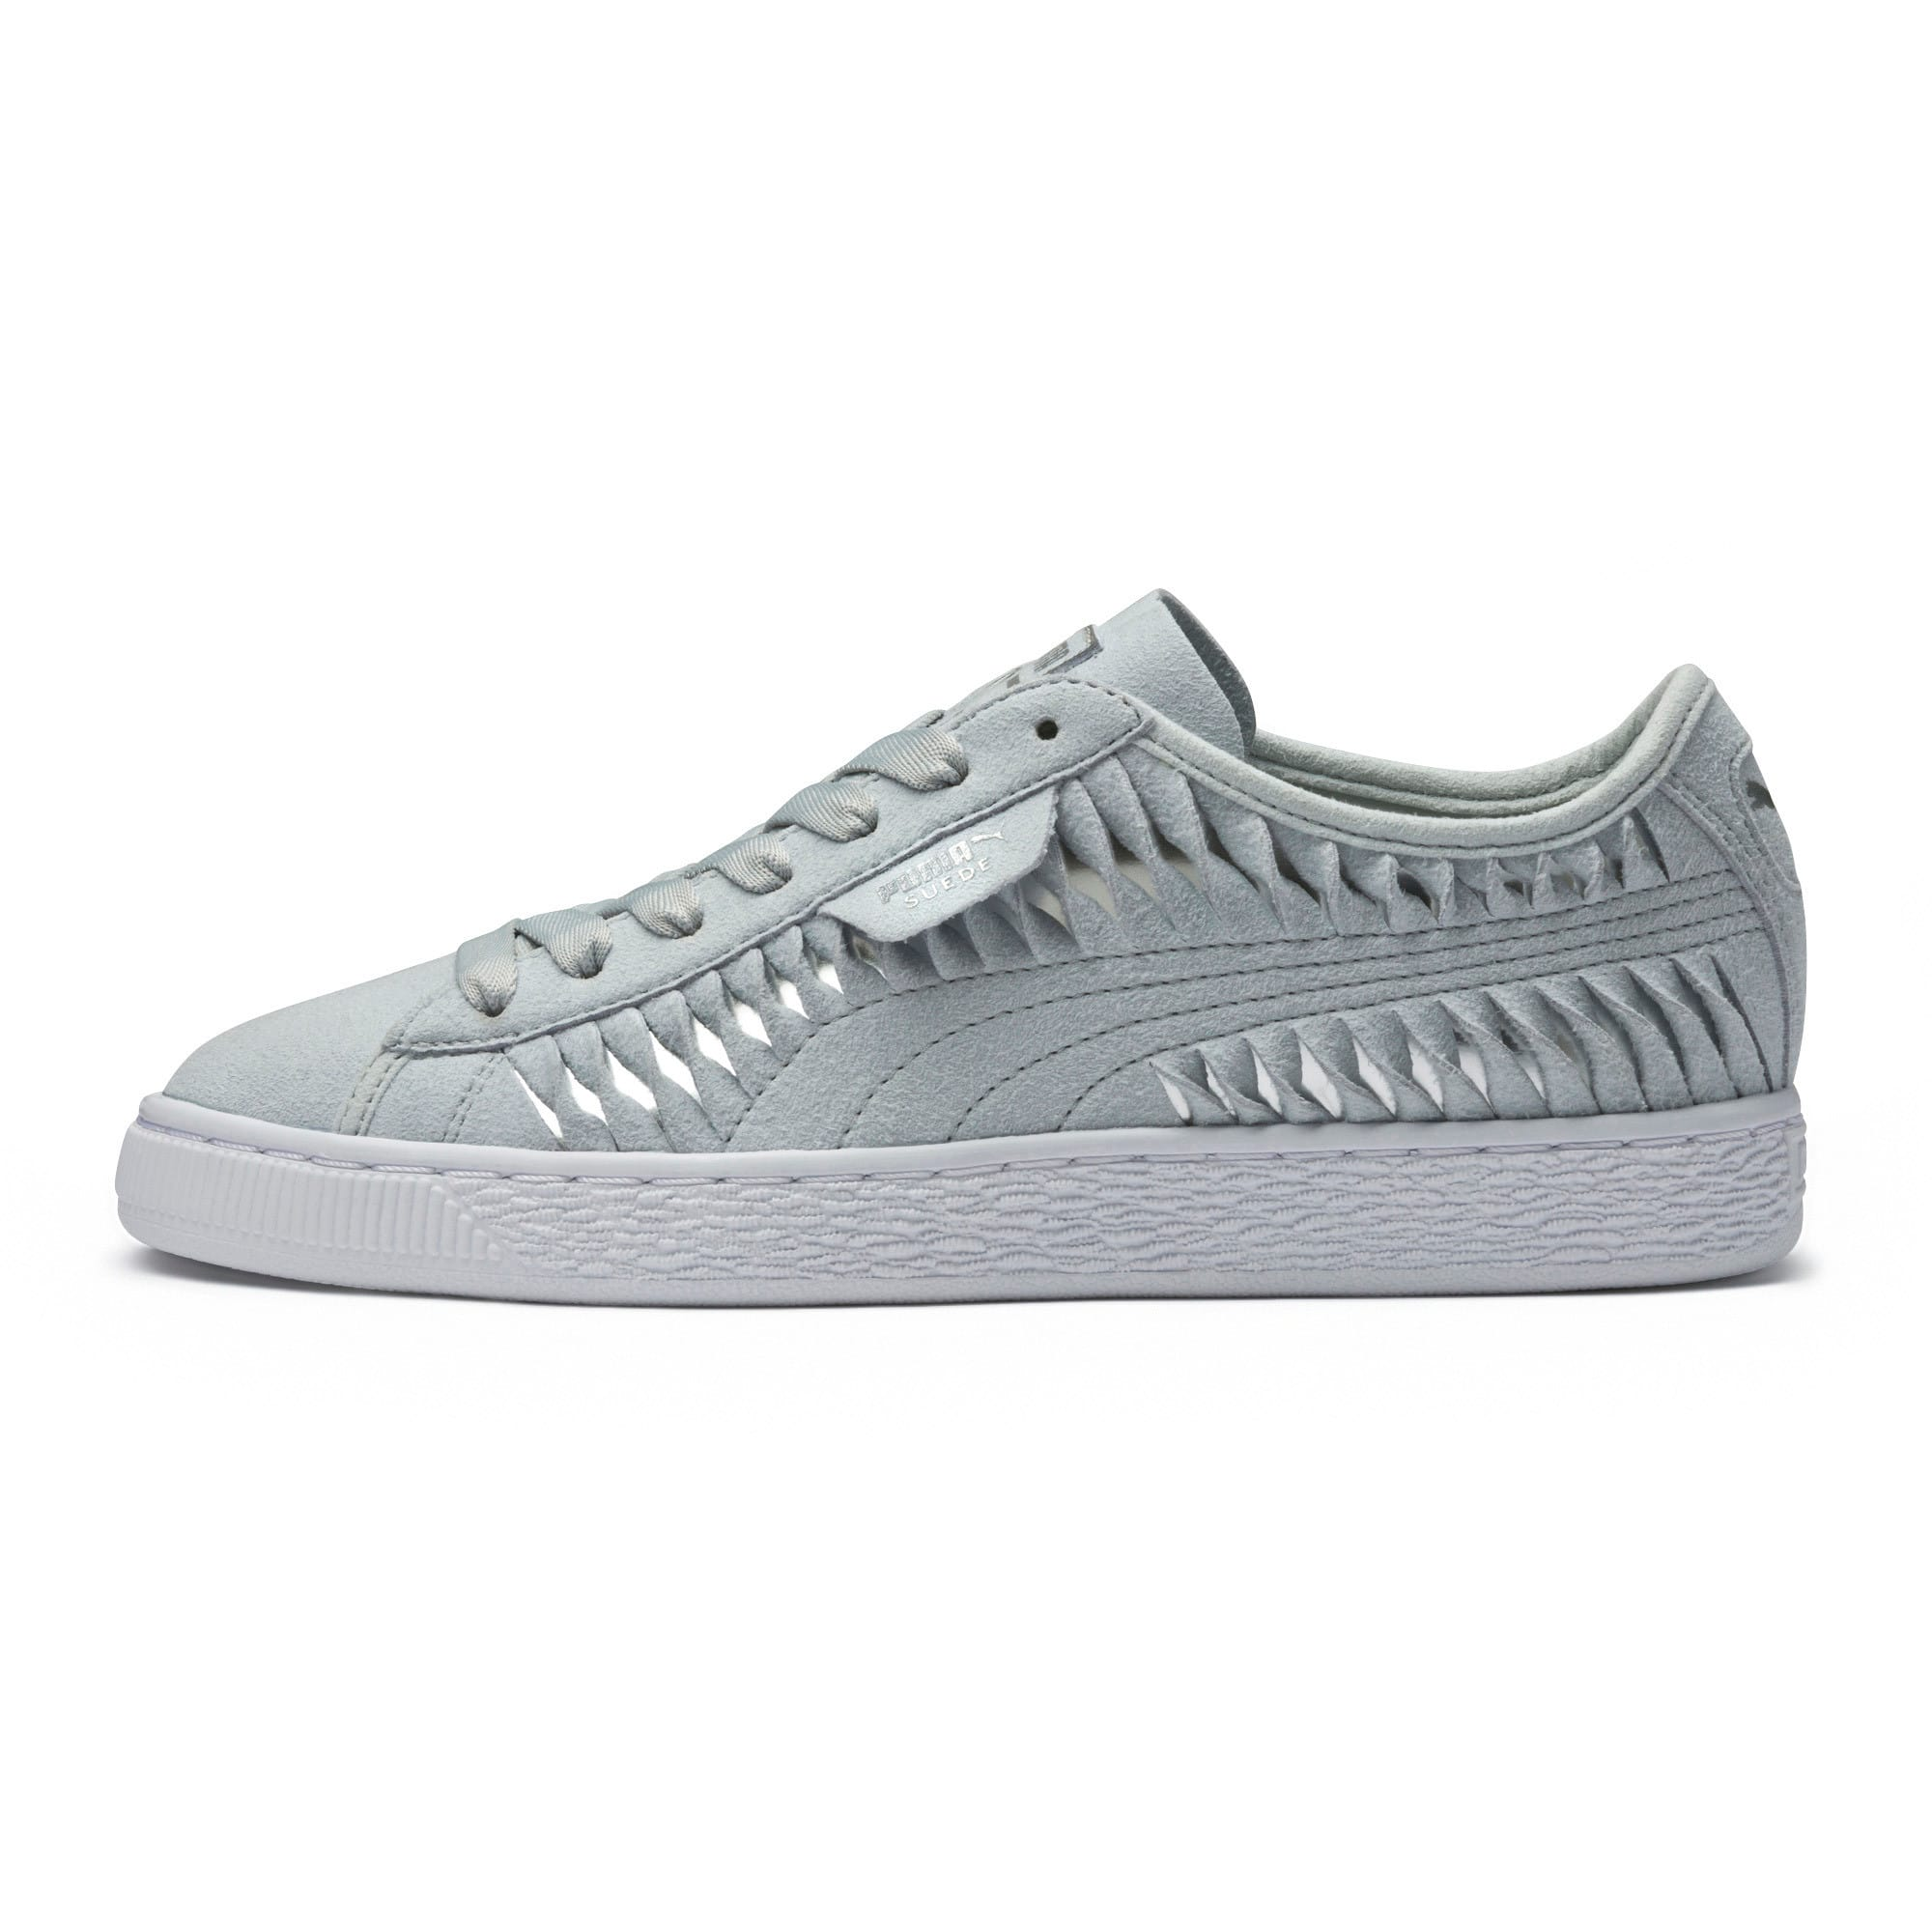 Thumbnail 6 of Suede Metallic Entwine Women's Trainers, Glacier Gray-Silver, medium-IND